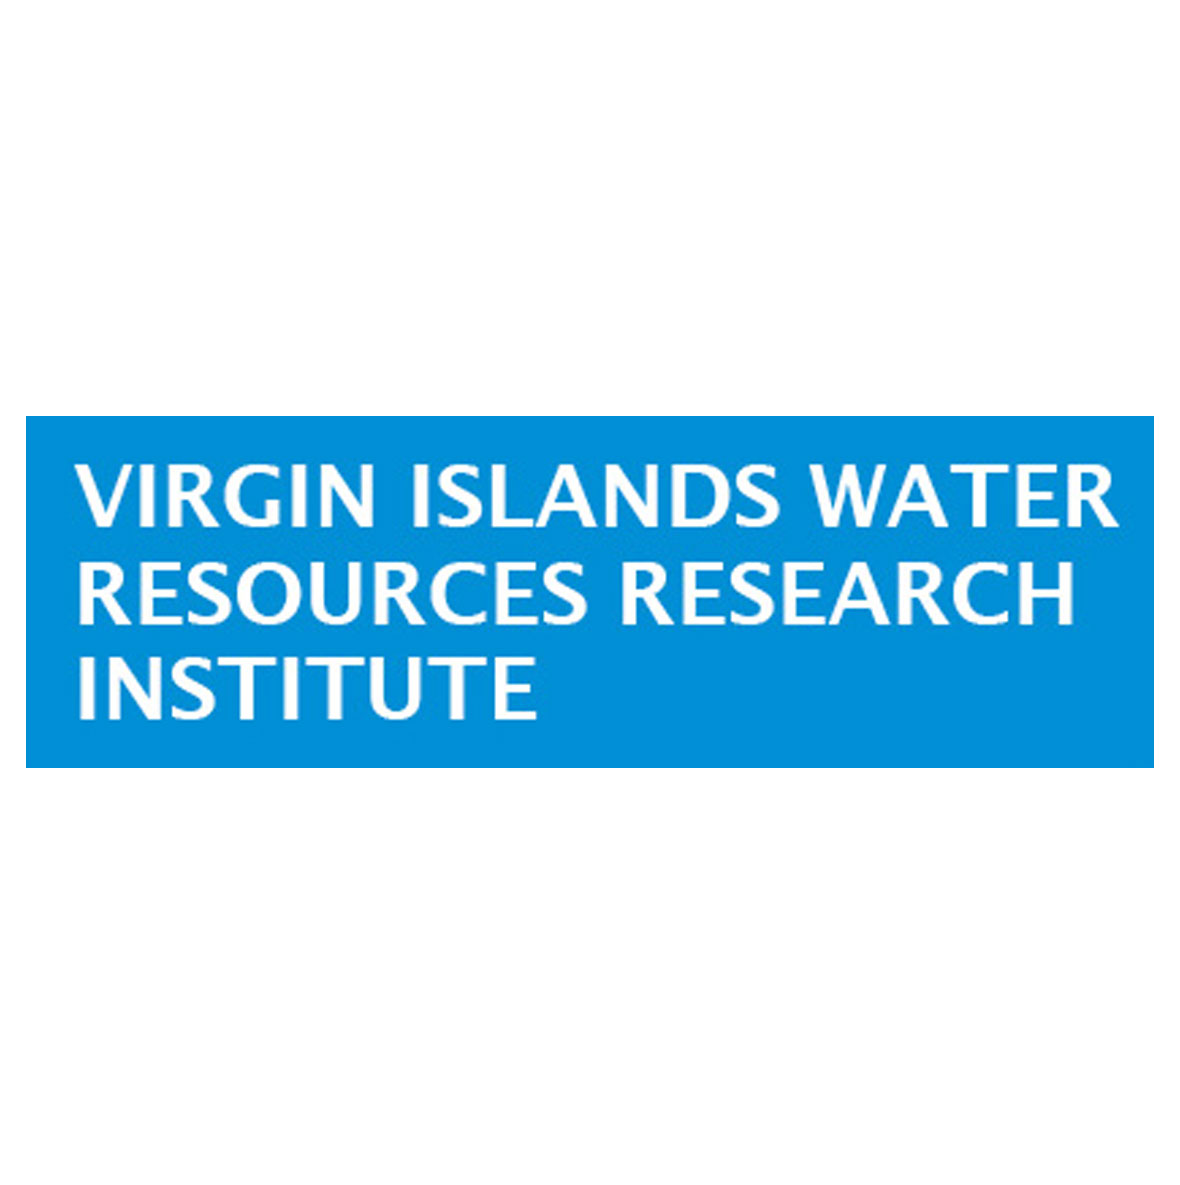 virgin islands water resources research institute text graphic